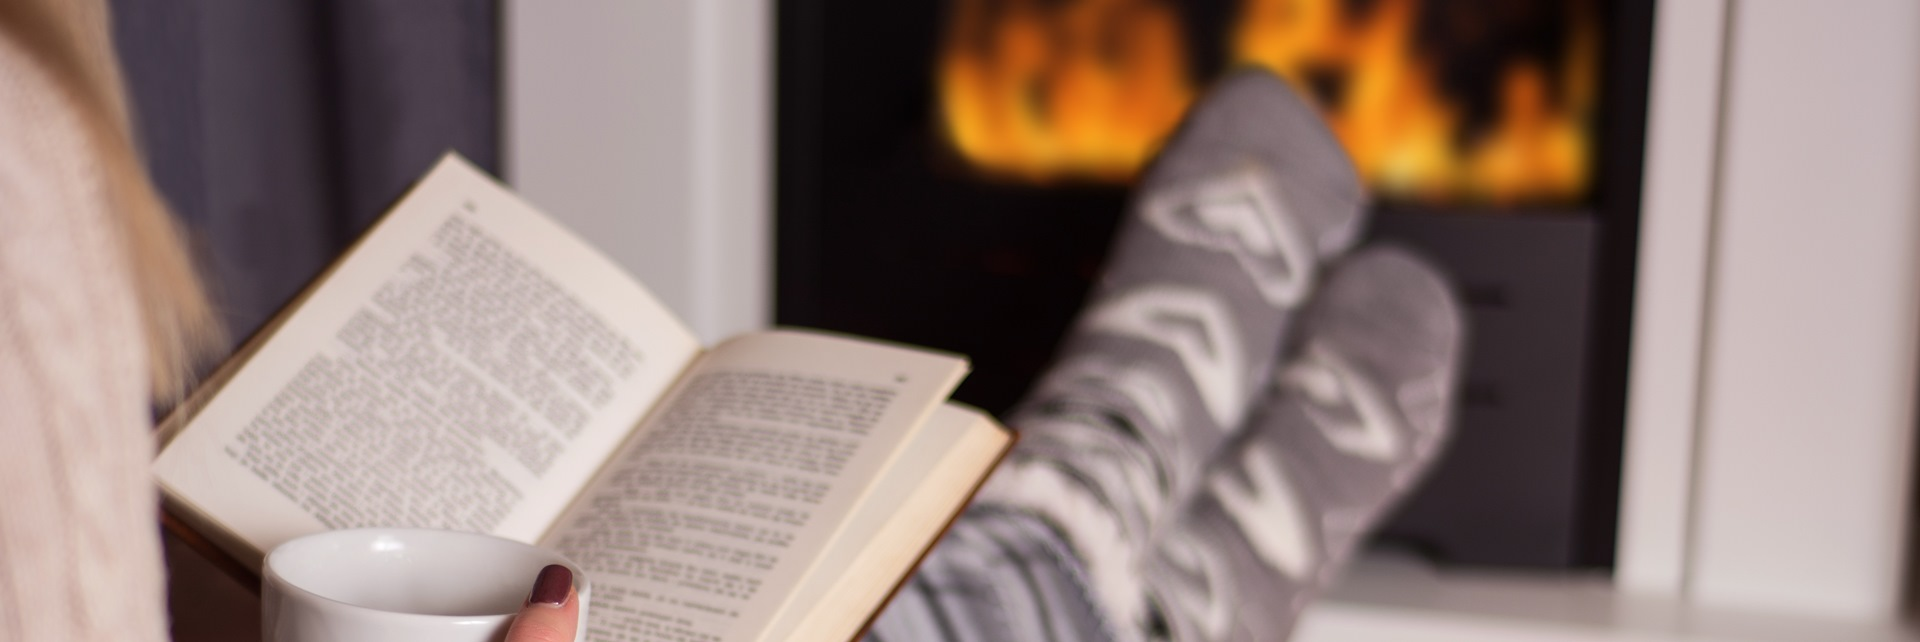 Cosy fireplace reading book